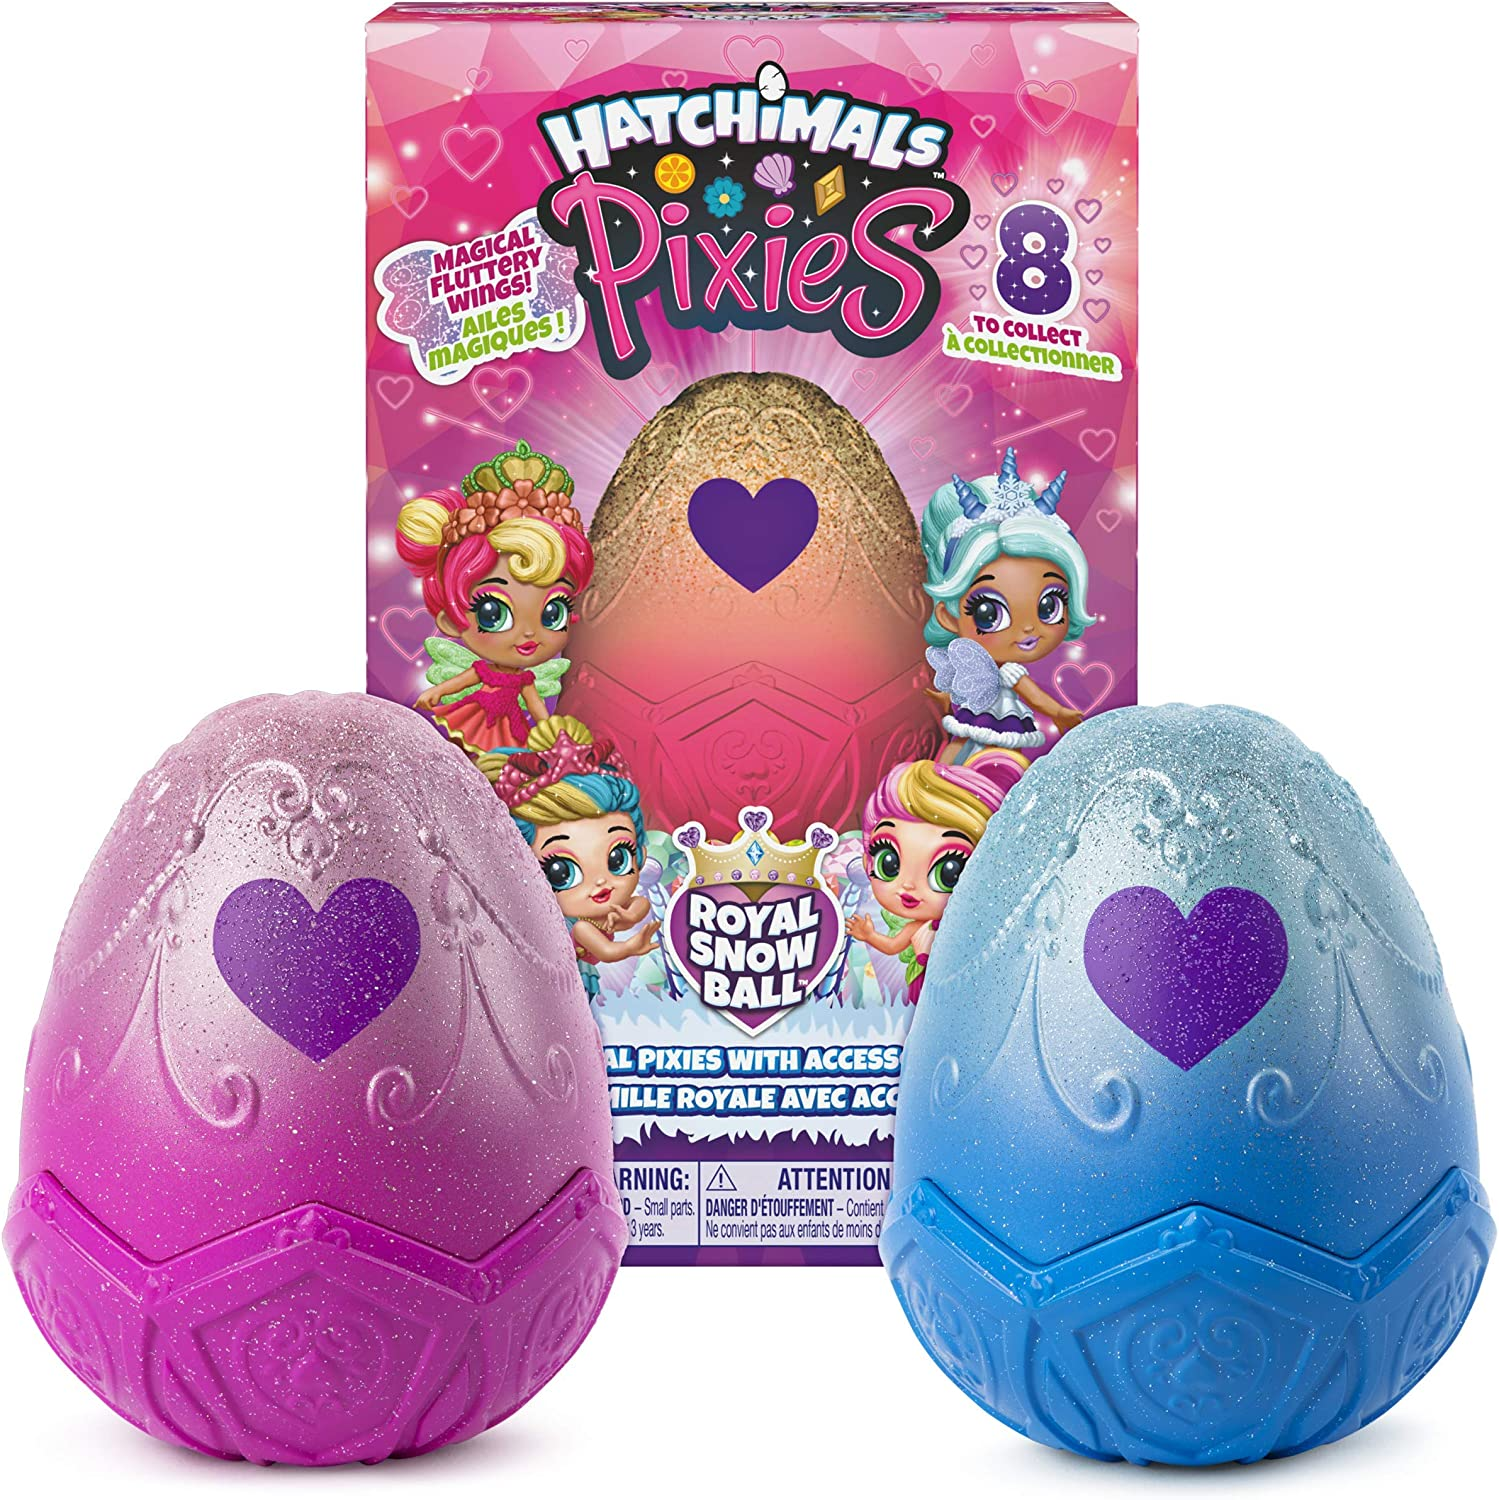 Hatchimals Pixies 2.5/' Collectible Doll and Accessories blue